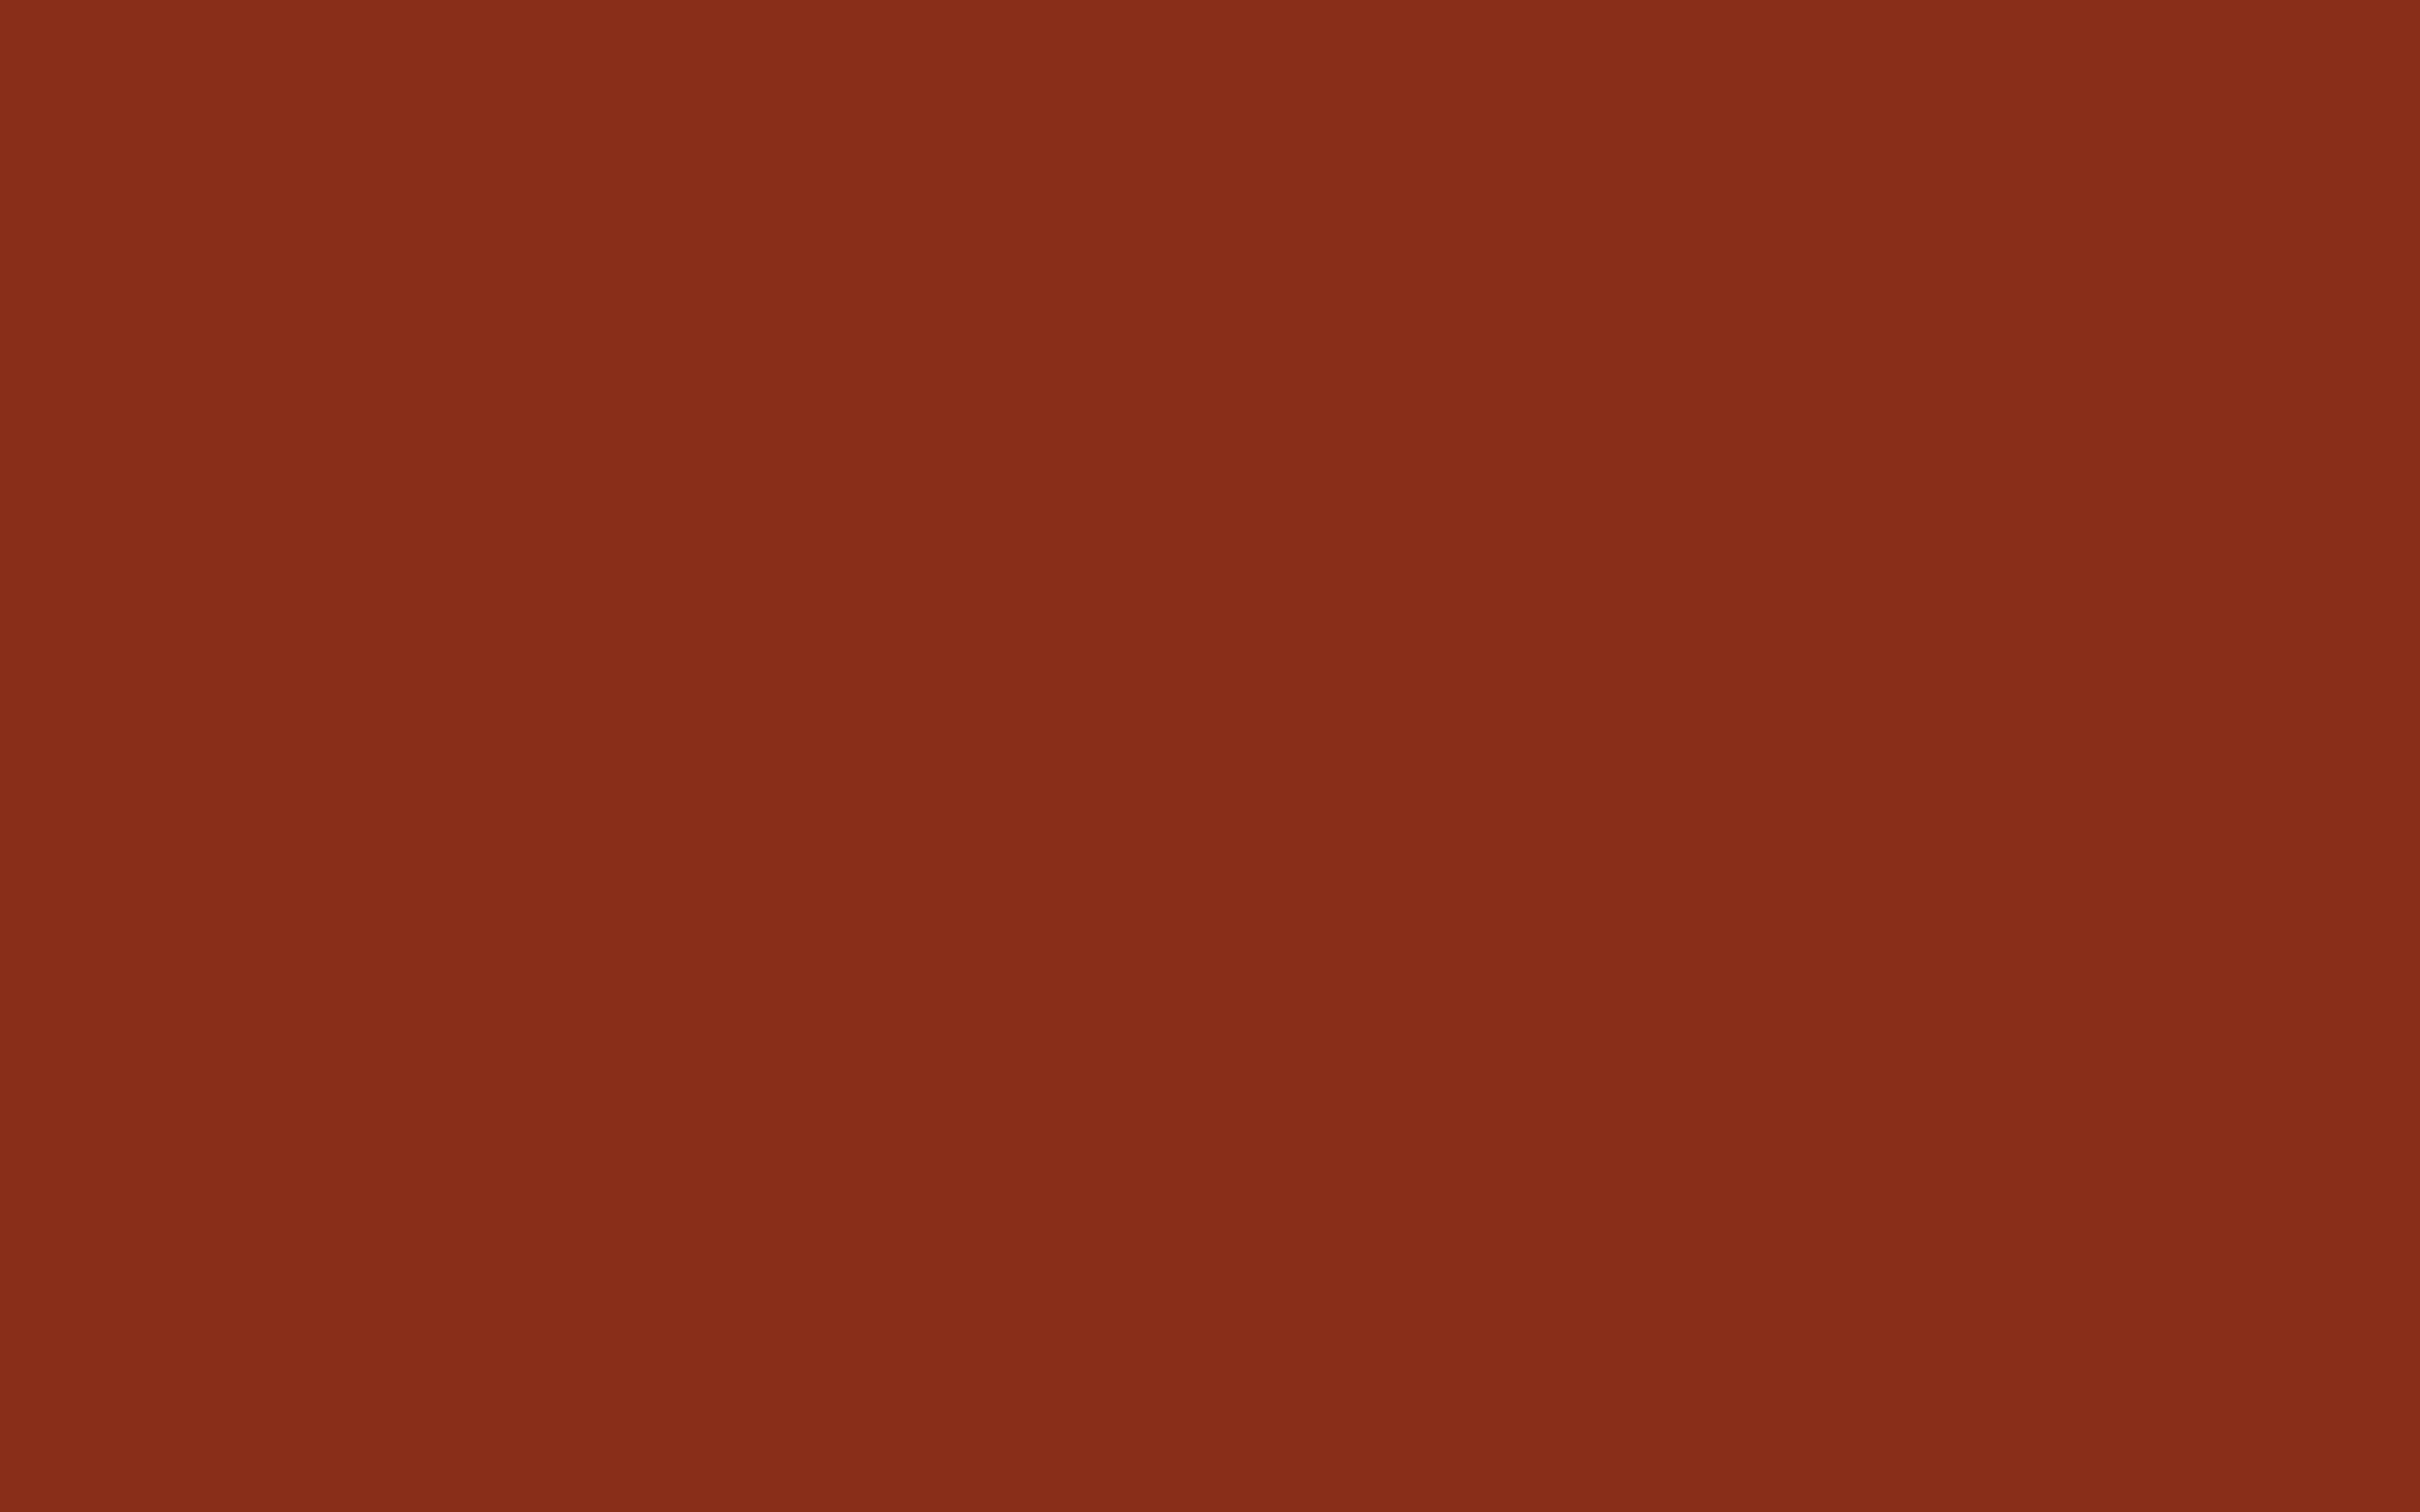 2560x1600 Sienna Solid Color Background